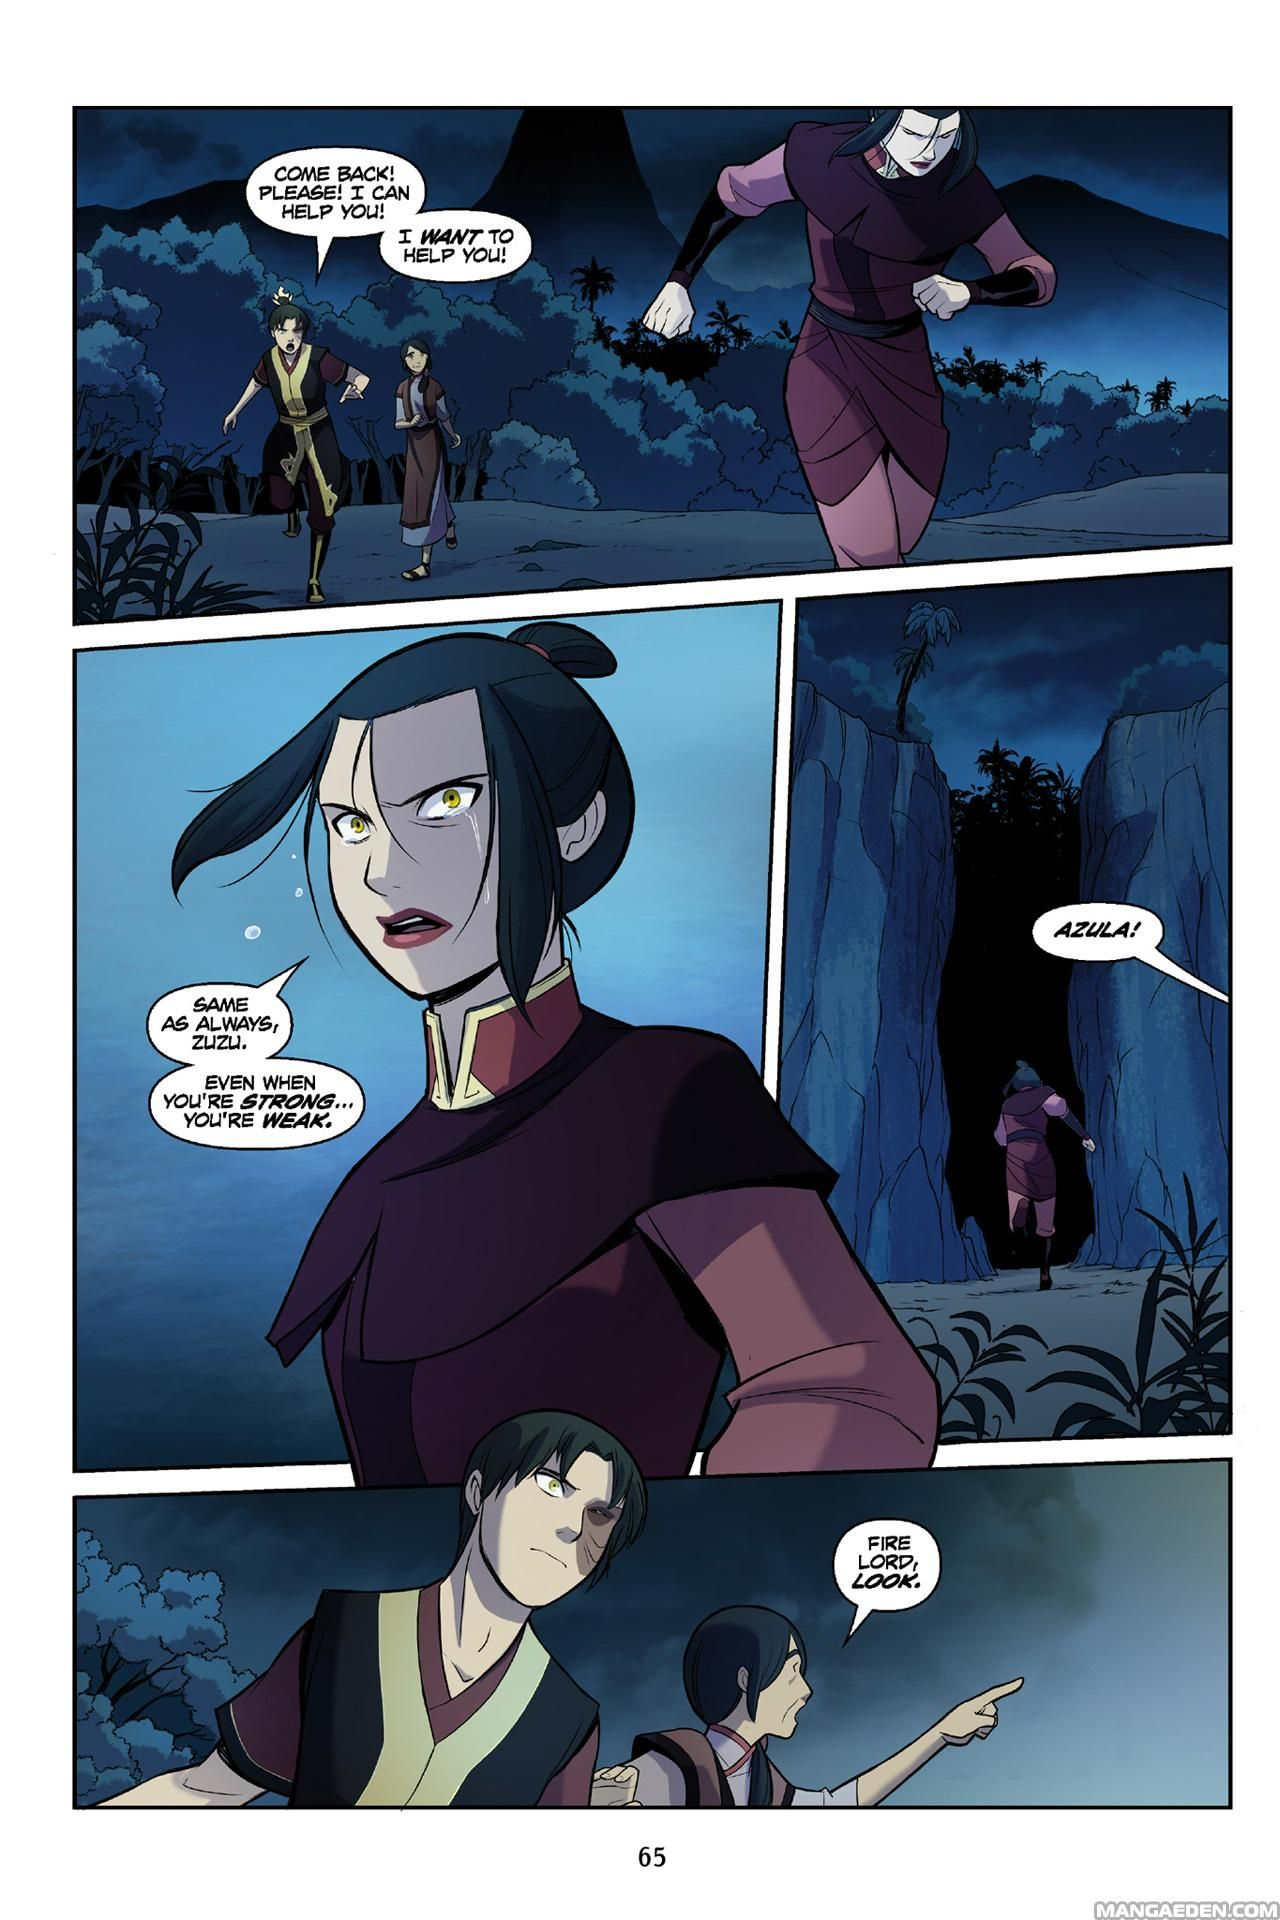 Manga avatar the last airbender the search chapter 3